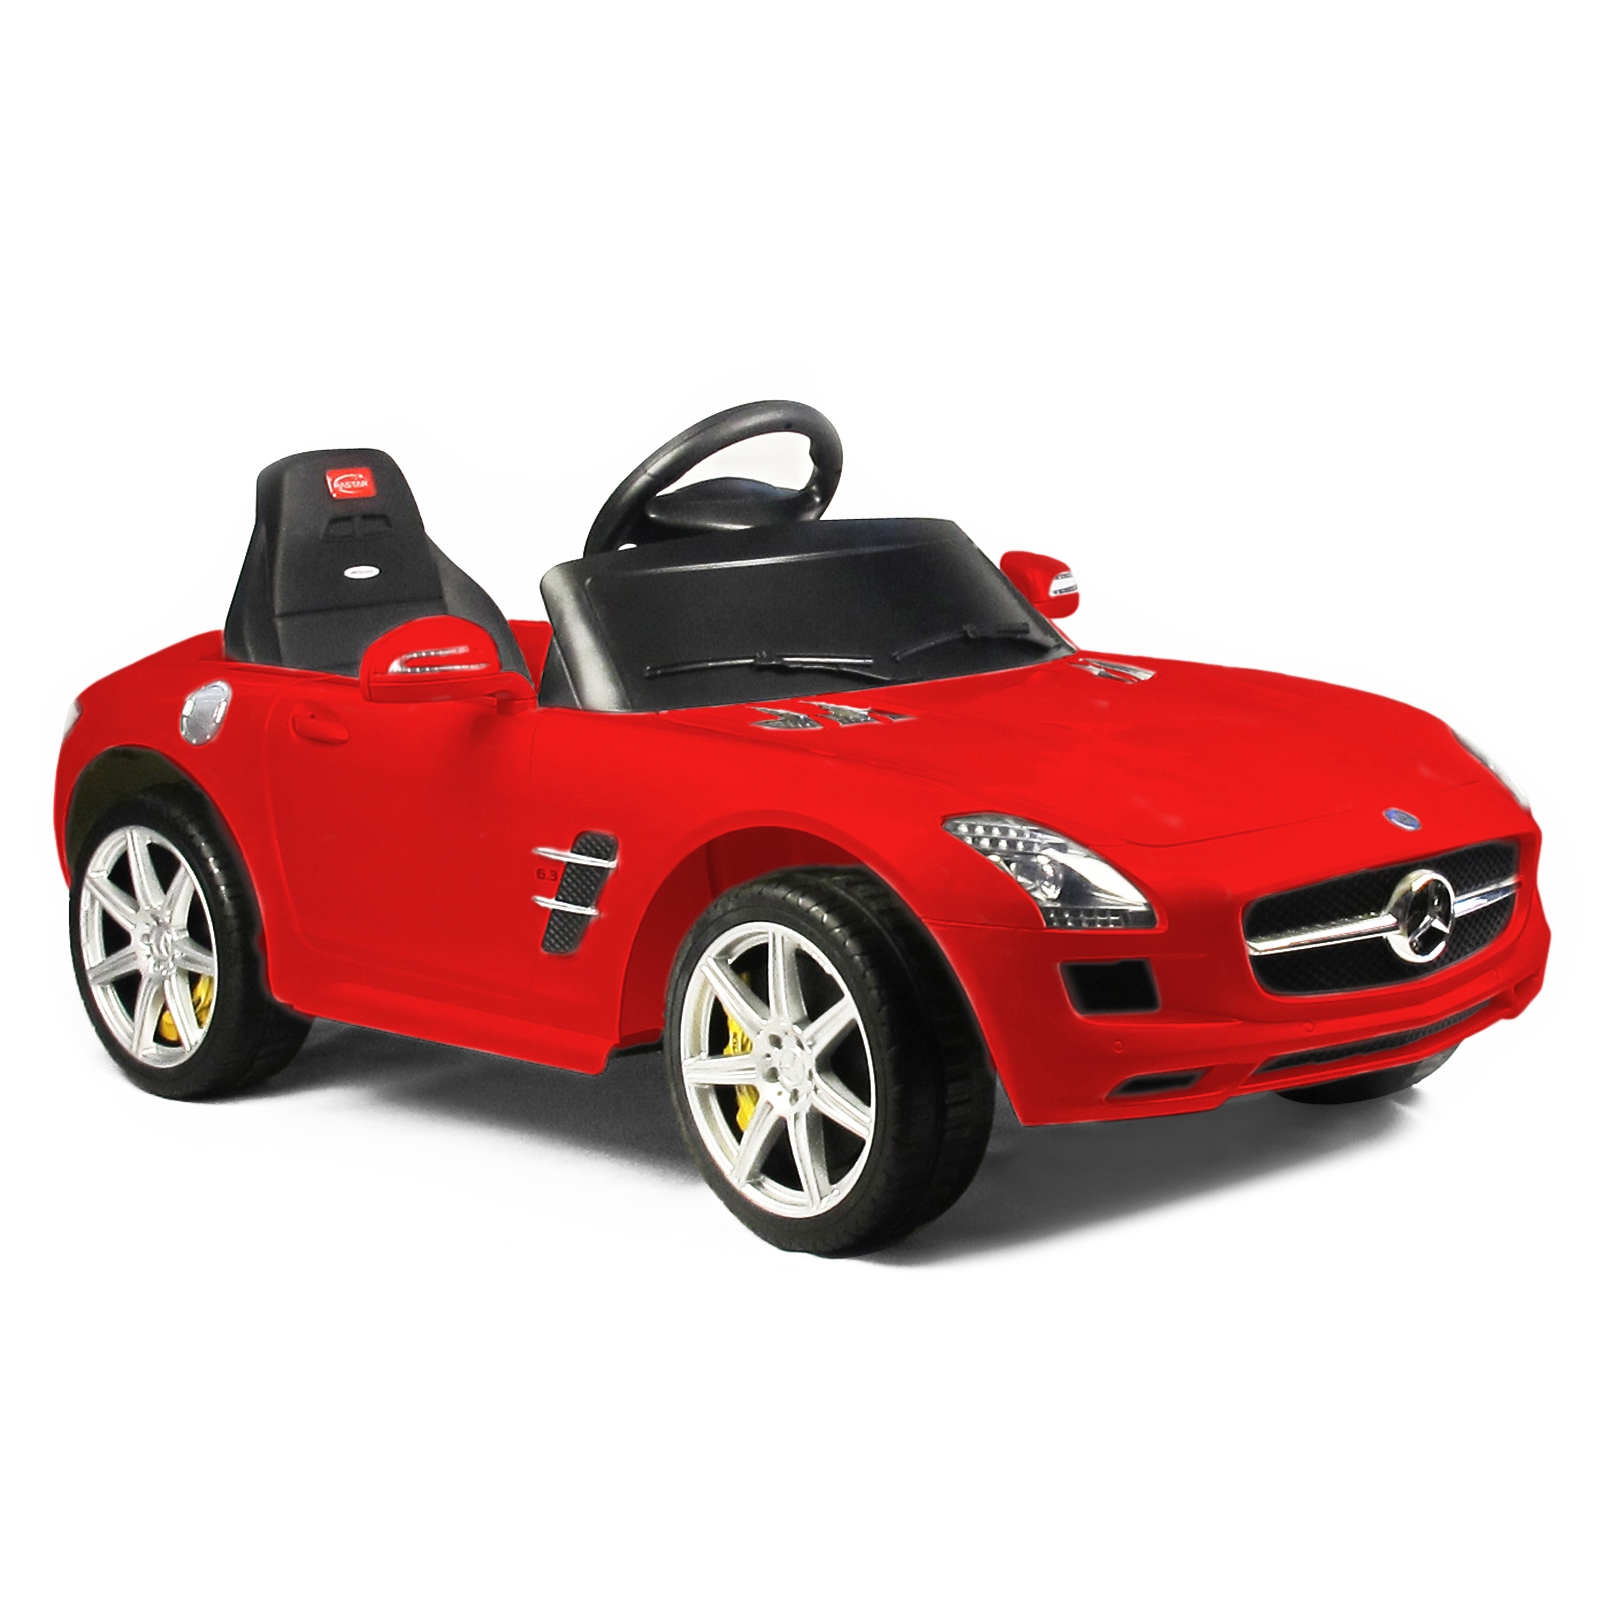 Mercedes Benz SLS 681R Officially Licsensed 12V Battery Powered Ride On (2 Colors)